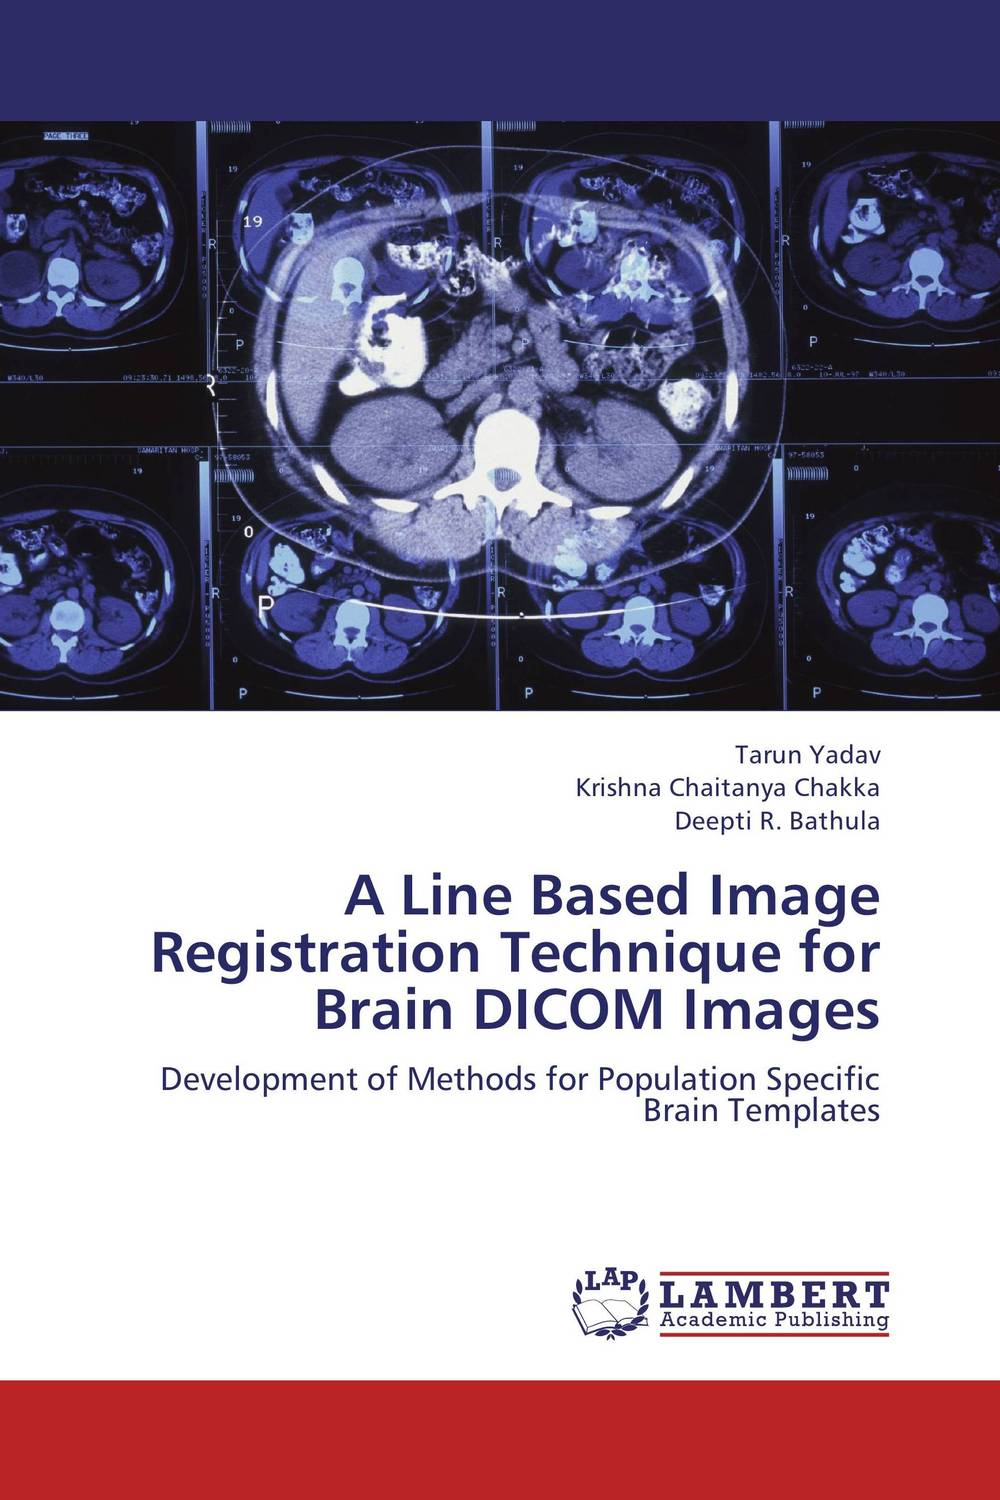 A Line Based Image Registration Technique for Brain DICOM Images clustering and optimization based image segmentation techniques